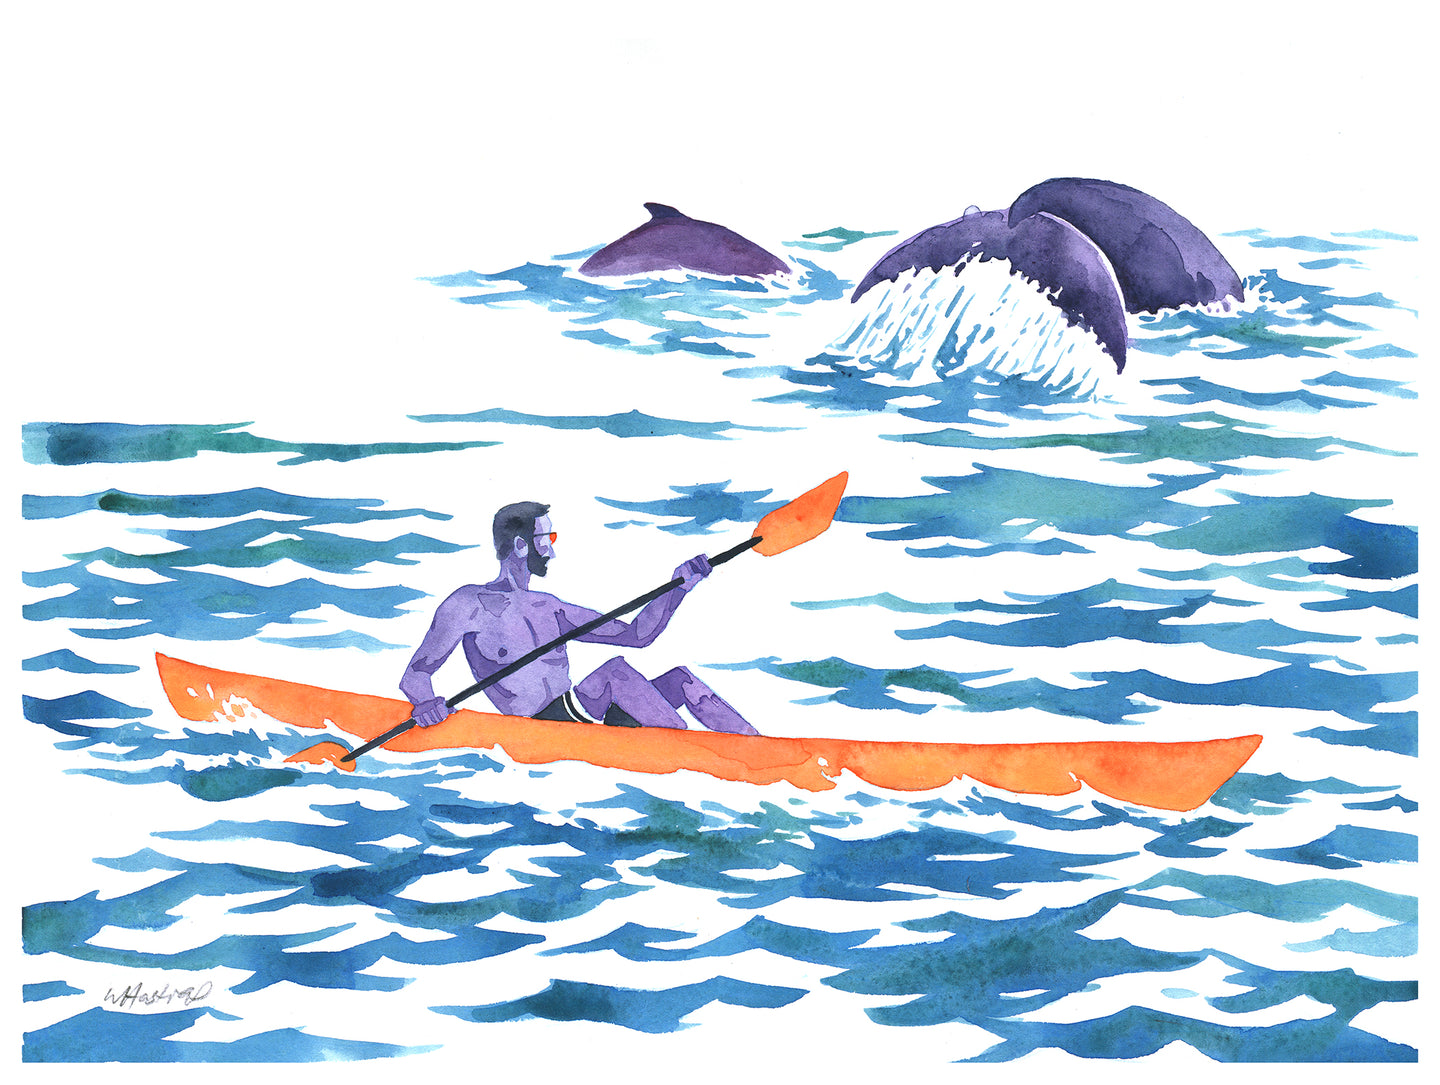 Sea Kayaker - Original